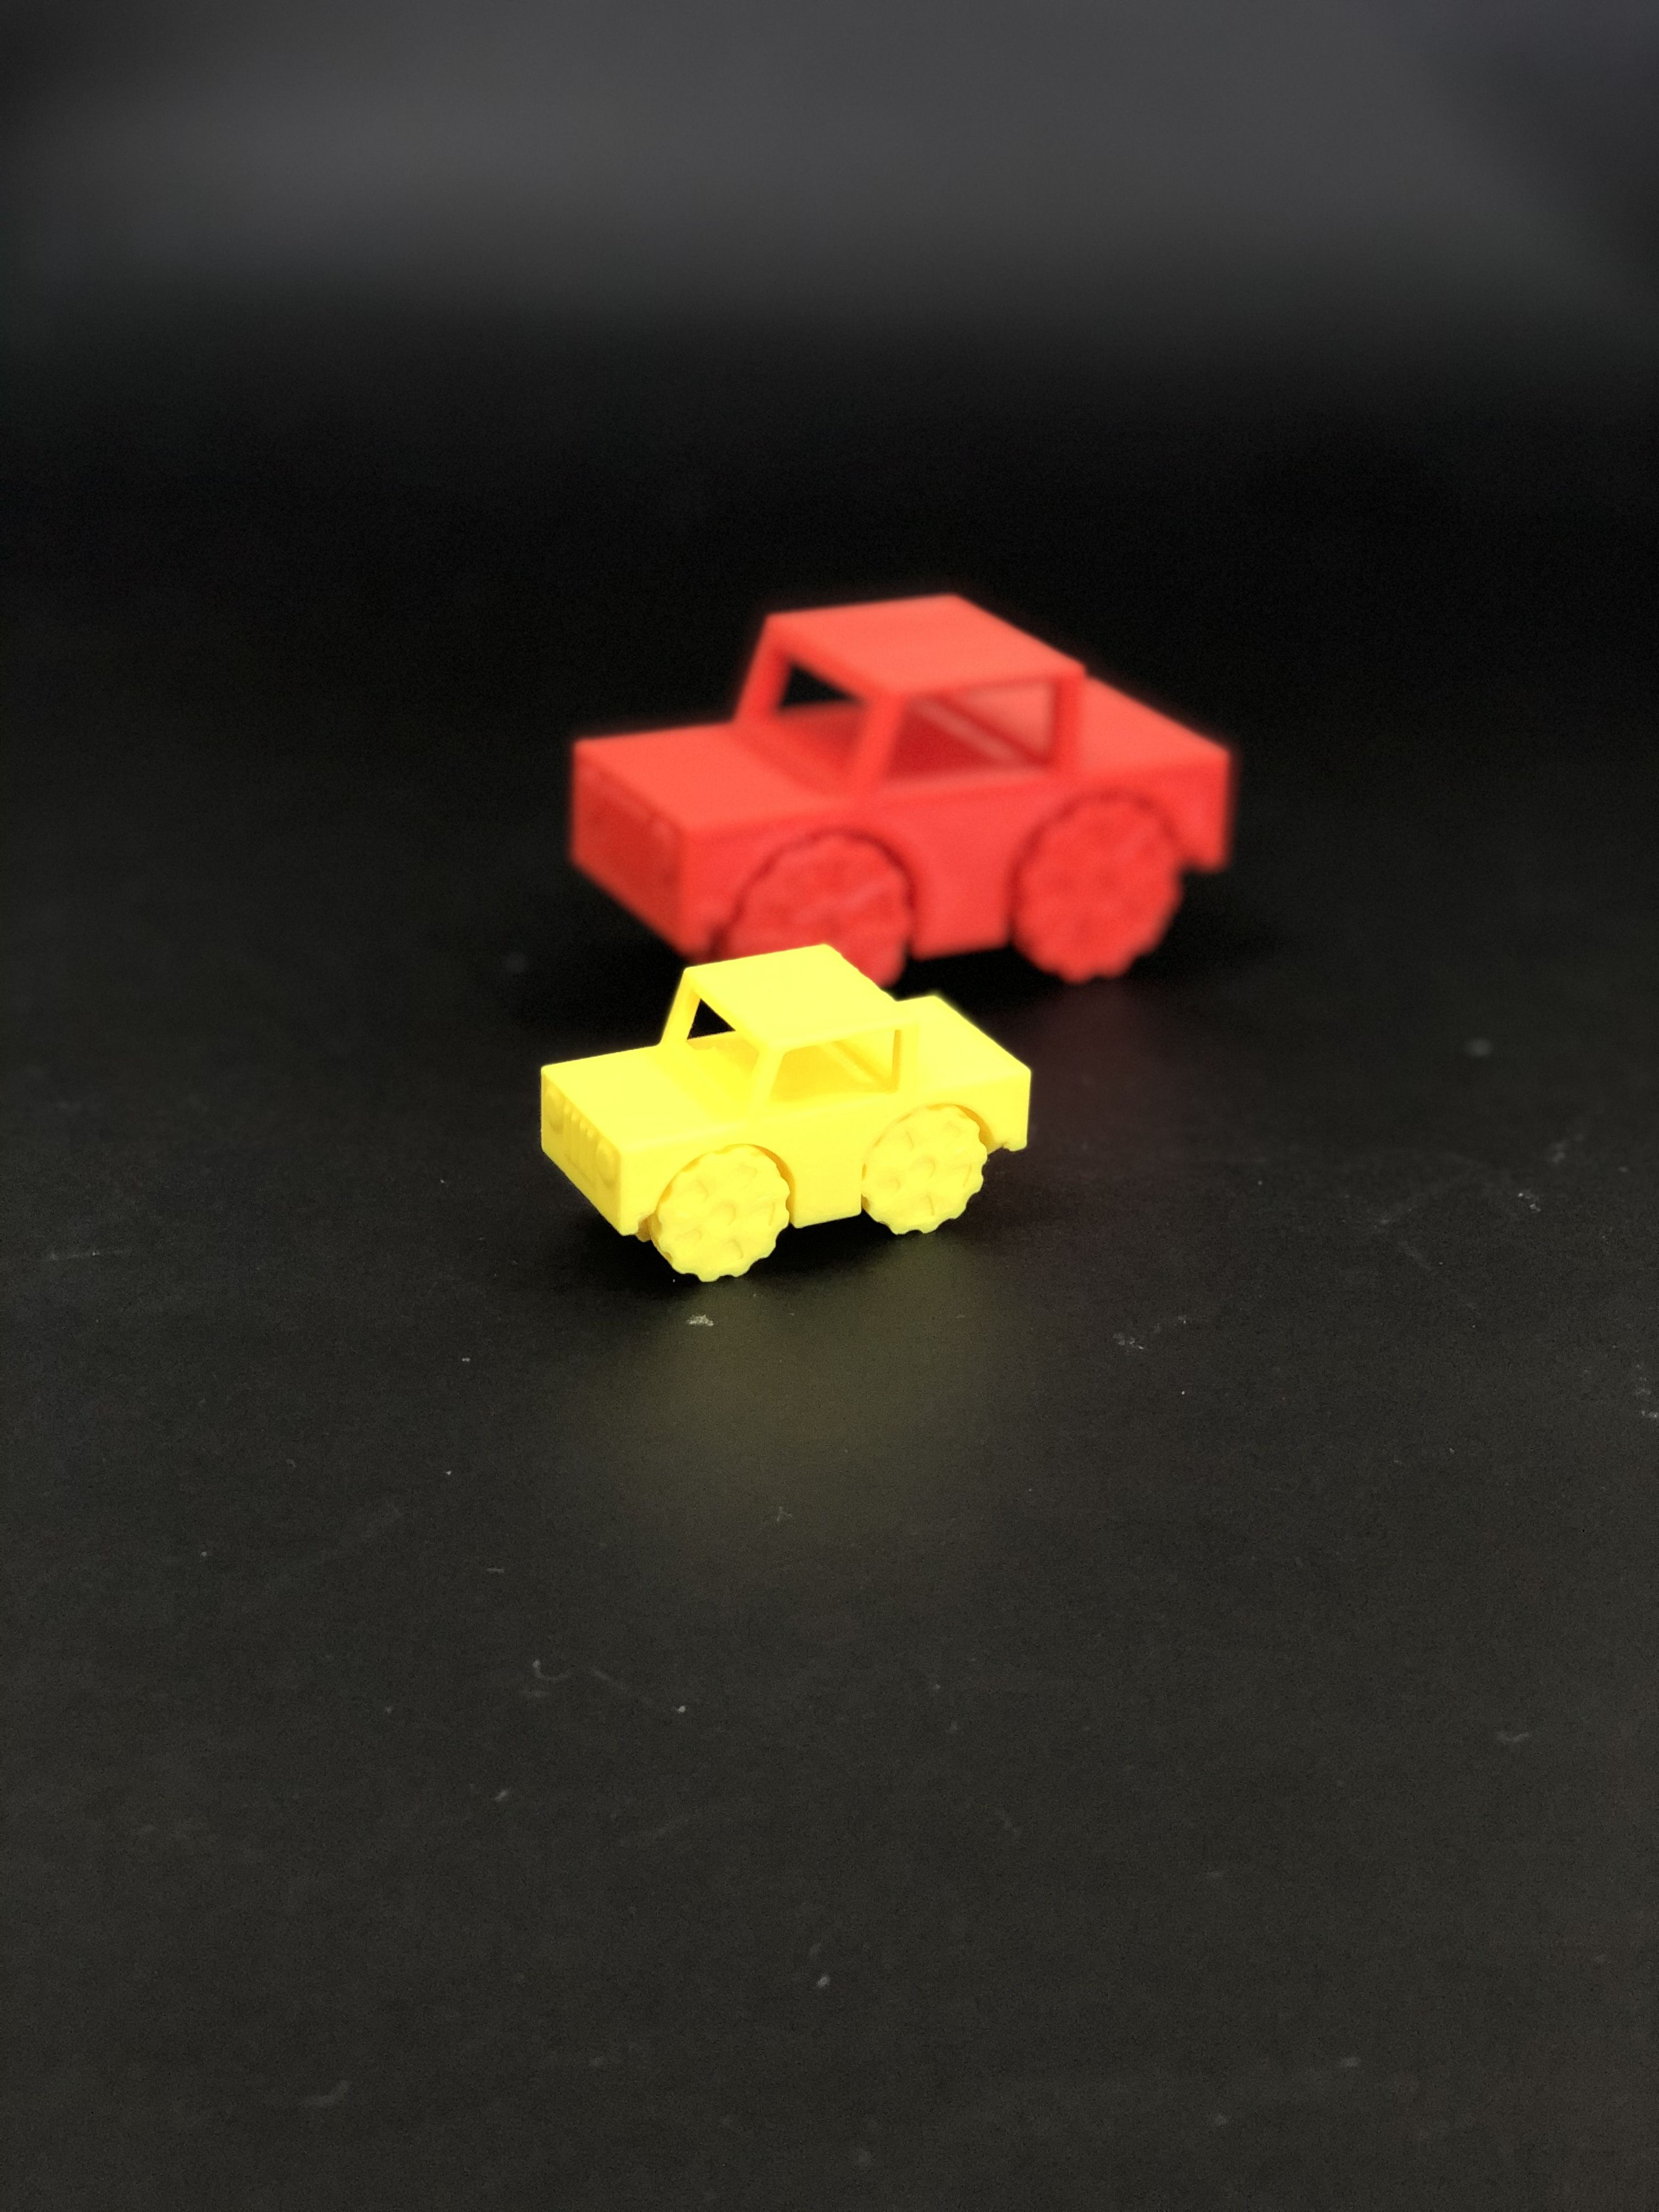 IMG_1110.jpg Download free STL file Little Jeep Car - PIP (Print In Place) without support • 3D printable template, uniduni3d